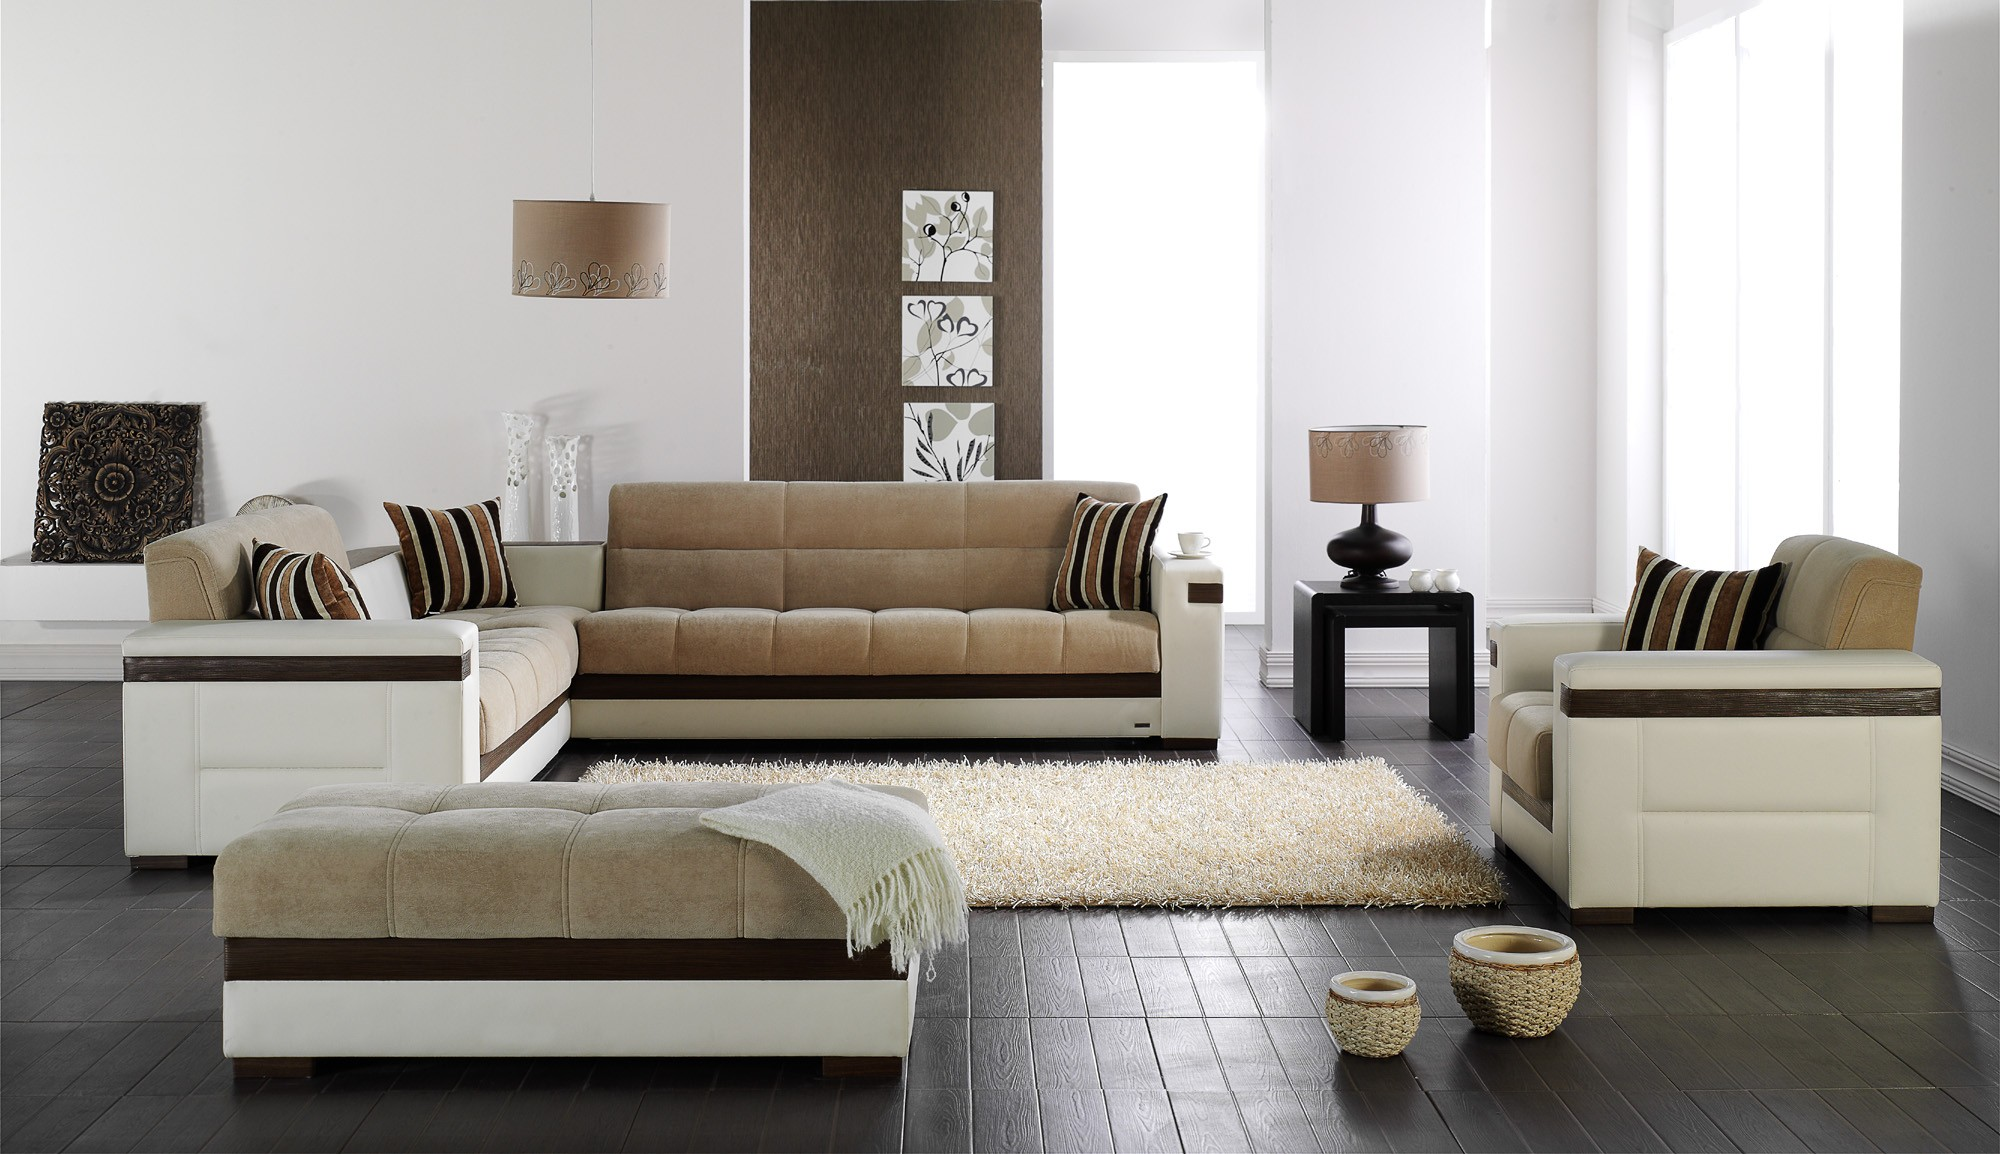 Stunning Design Of The Living Room Areas With Brown Wooden Floor And White Wall Ideas With Modern Sofa Sets